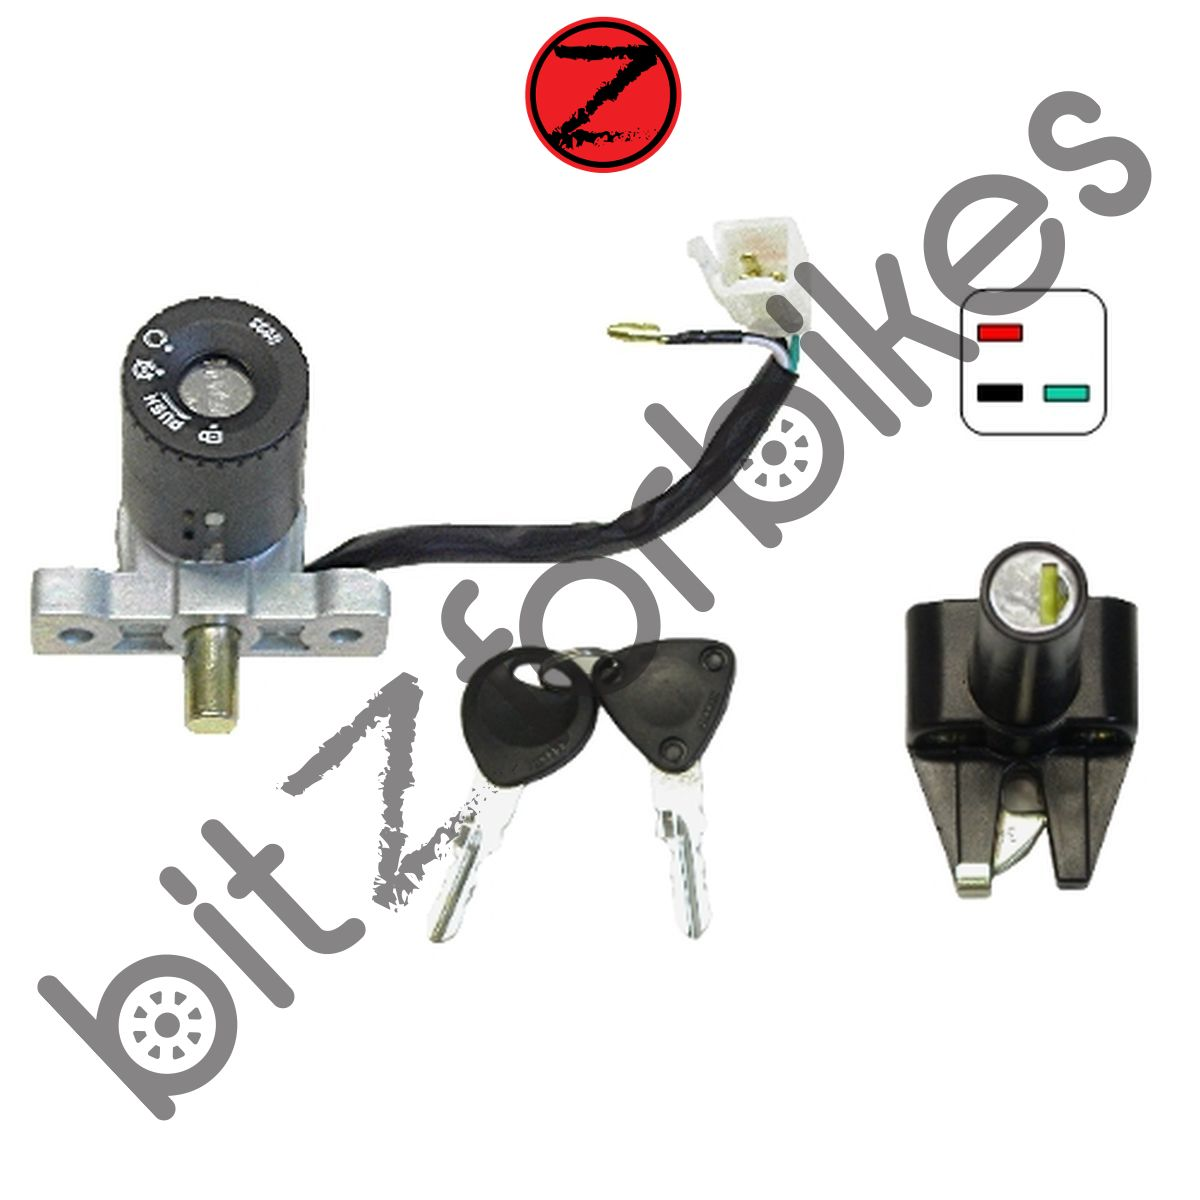 Sentinel Ignition Switch Lock Set (4 Wire) Honda FES 125-1 Pantheon (2001